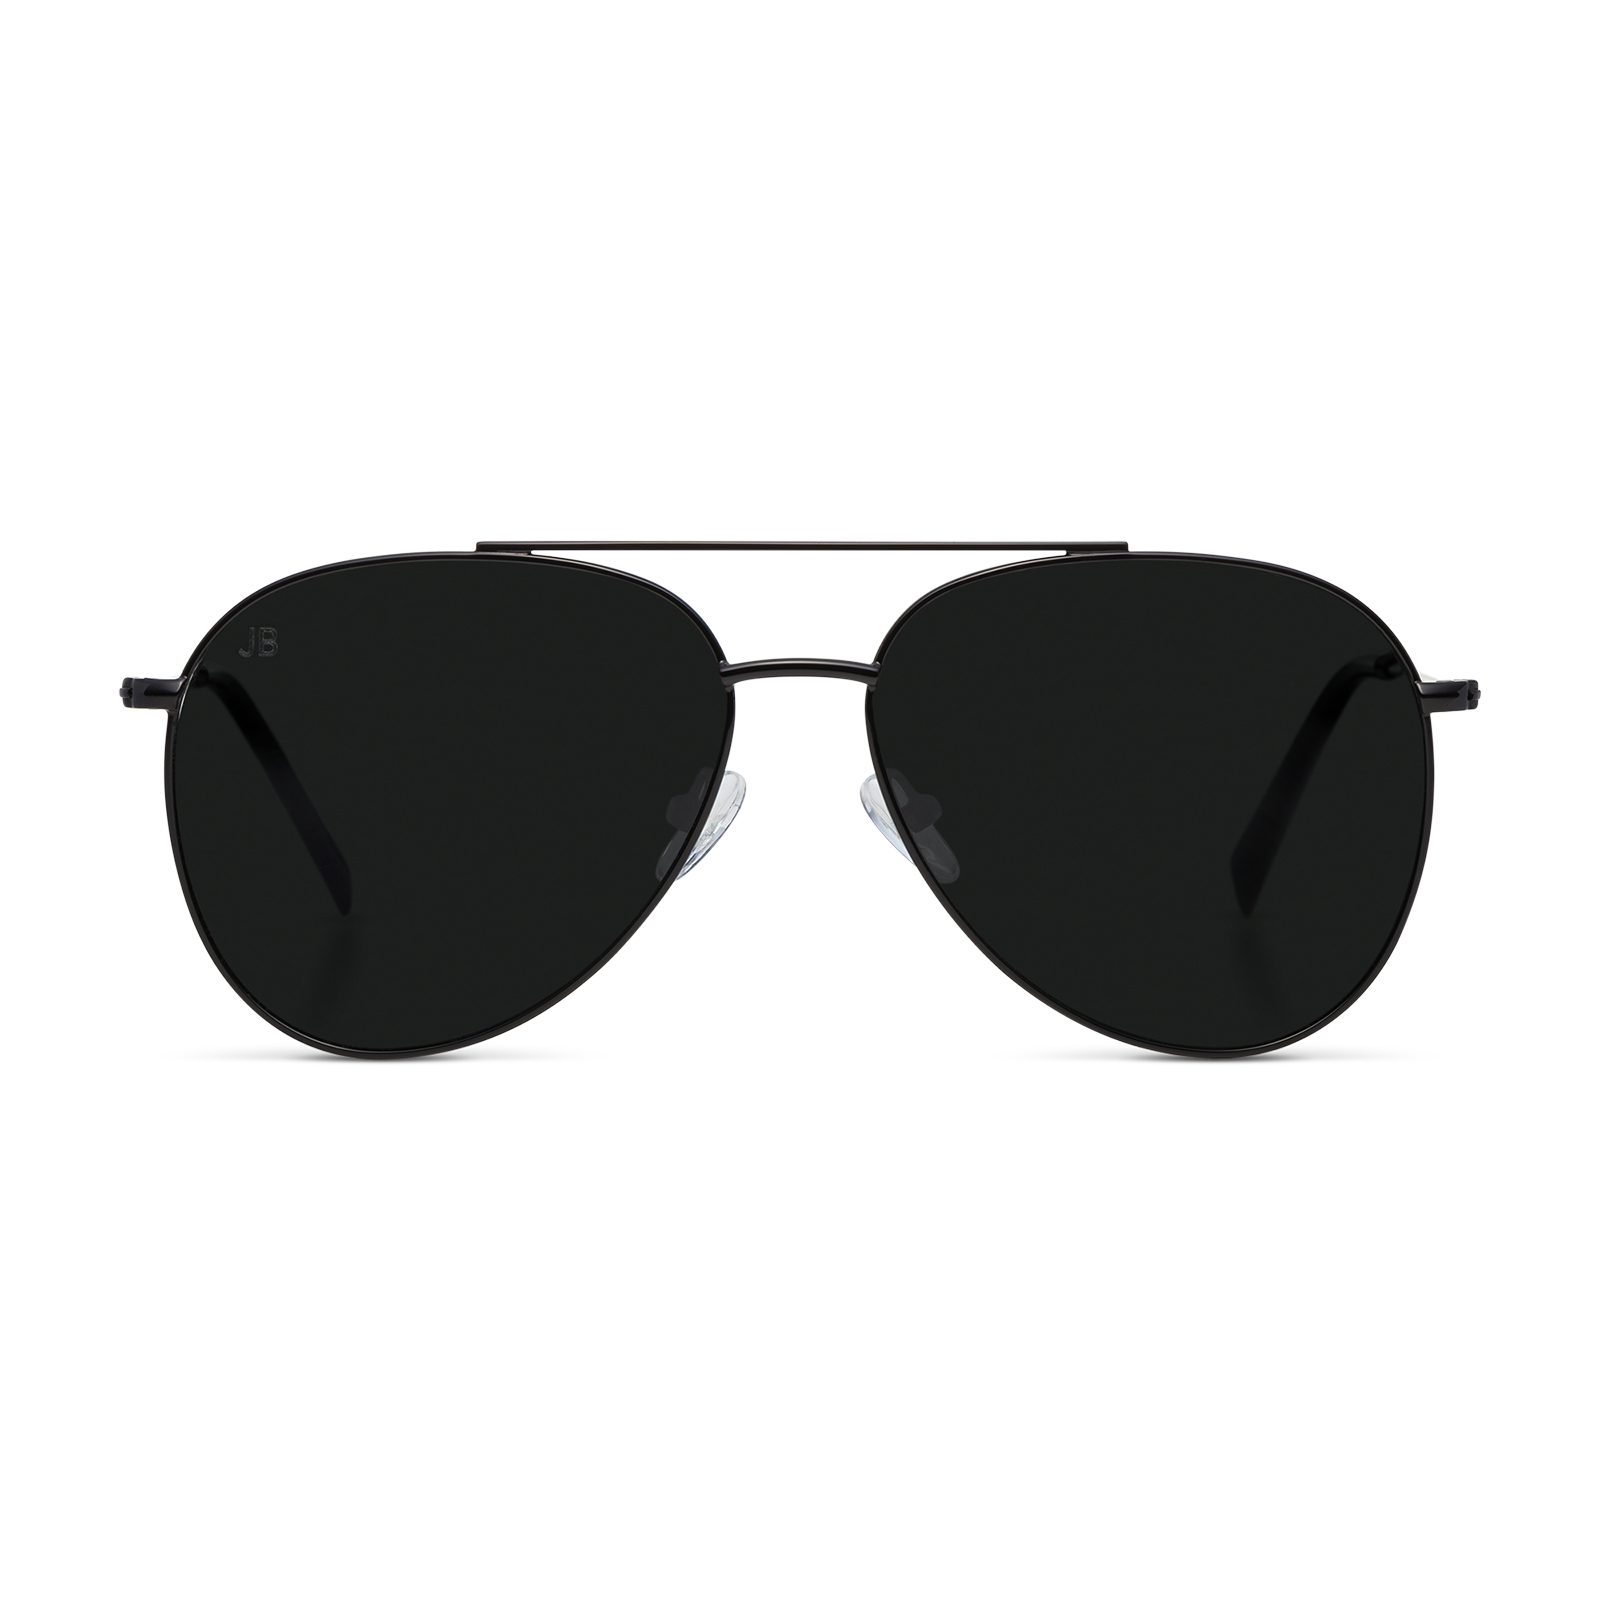 sunglasses product photo, spectacles product photo, optical instrument product photo